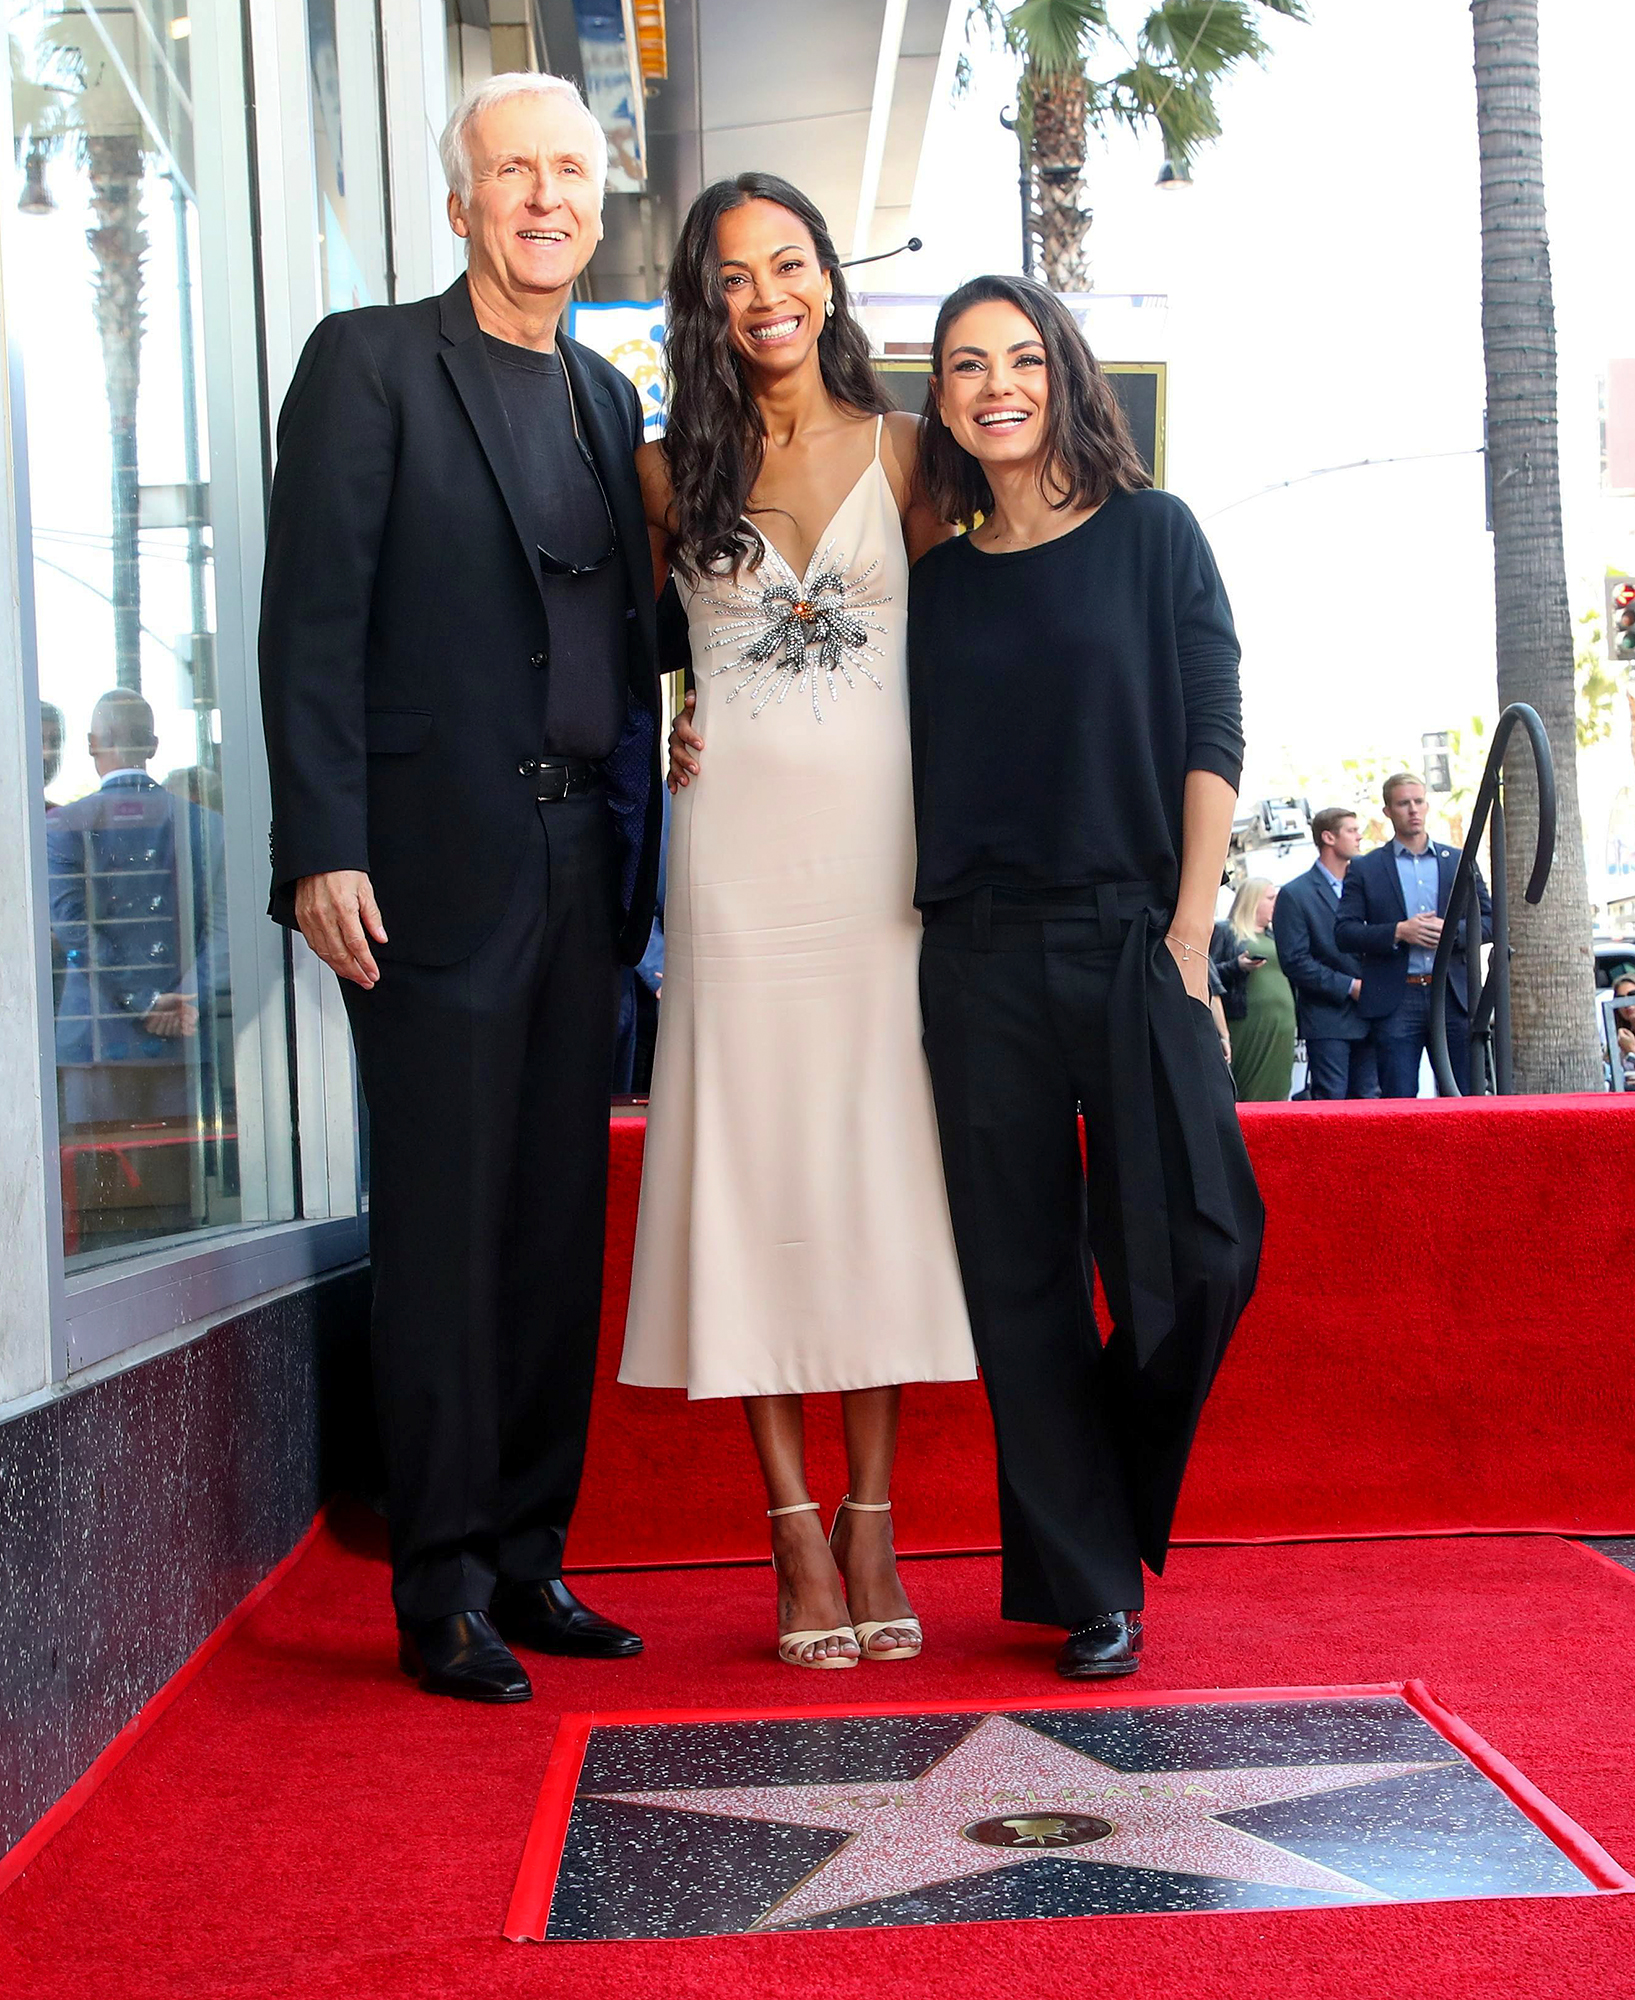 Zoe Saldana honored with a star on the Hollywood Walk of Fame, Los Angeles, USA - 03 May 2018